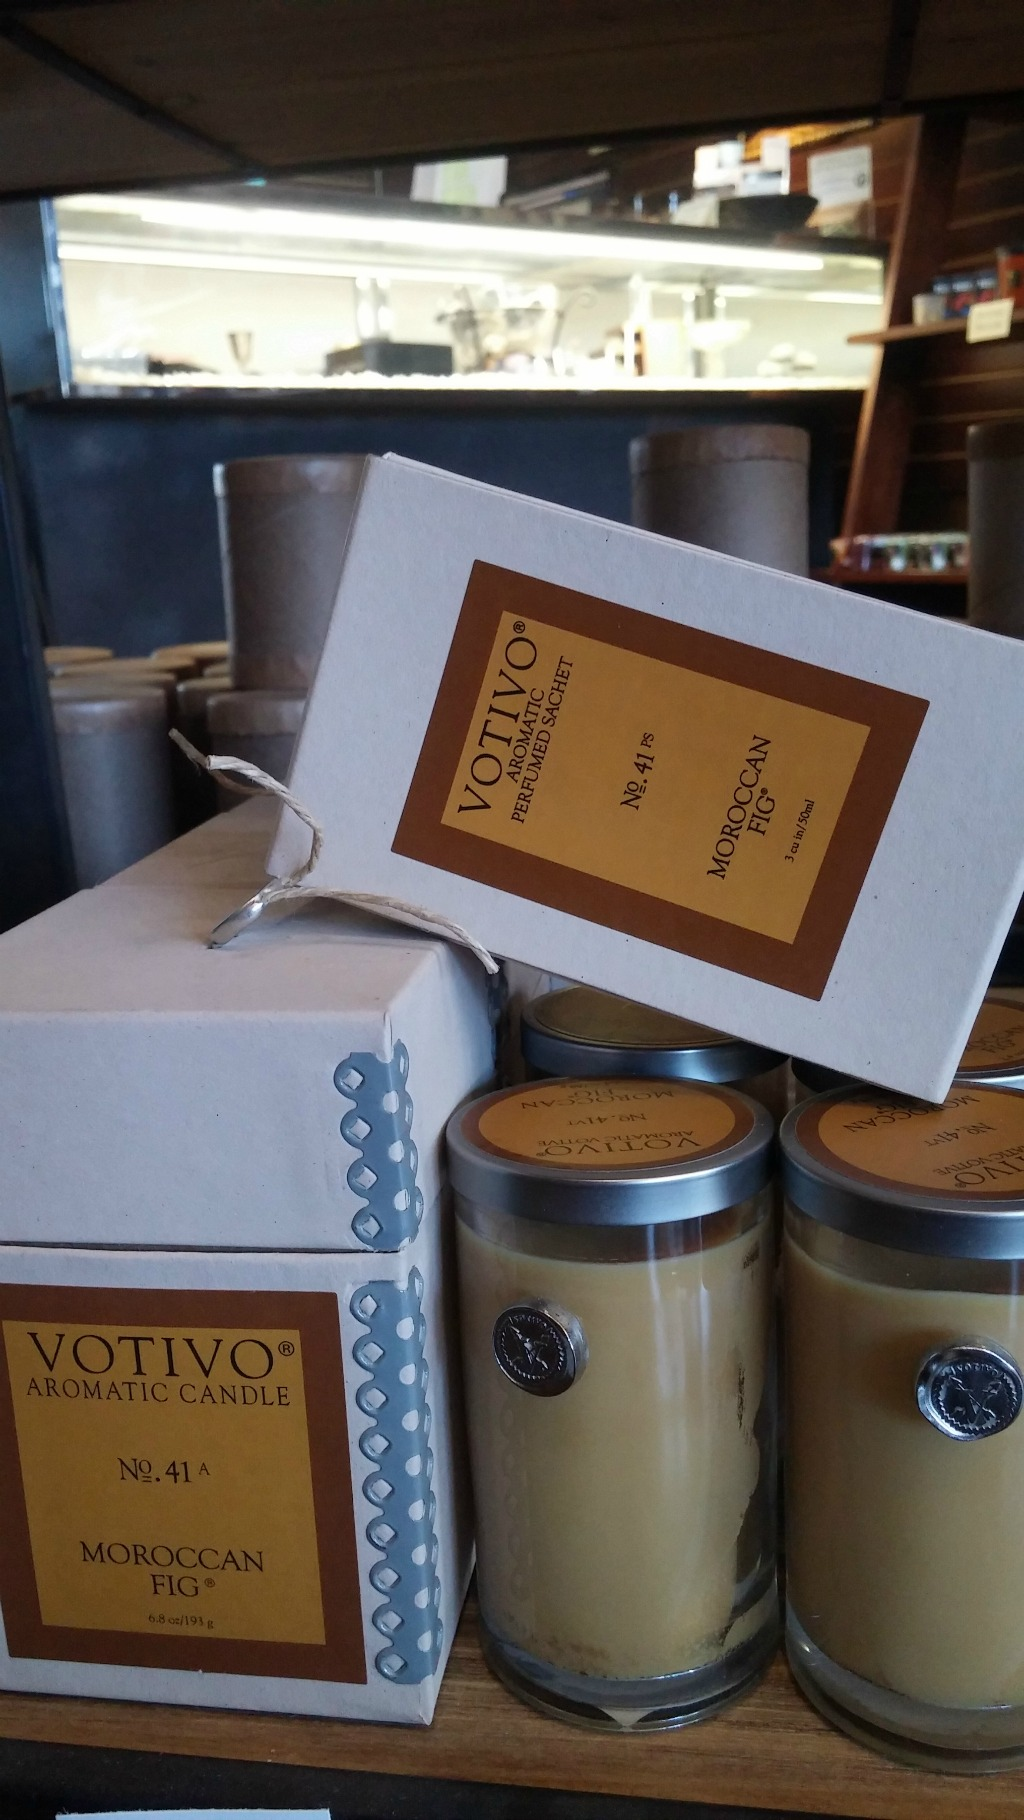 Votivo Moroccan Fig Candles 15% OFF This Week ONLY!! IN-Store Special